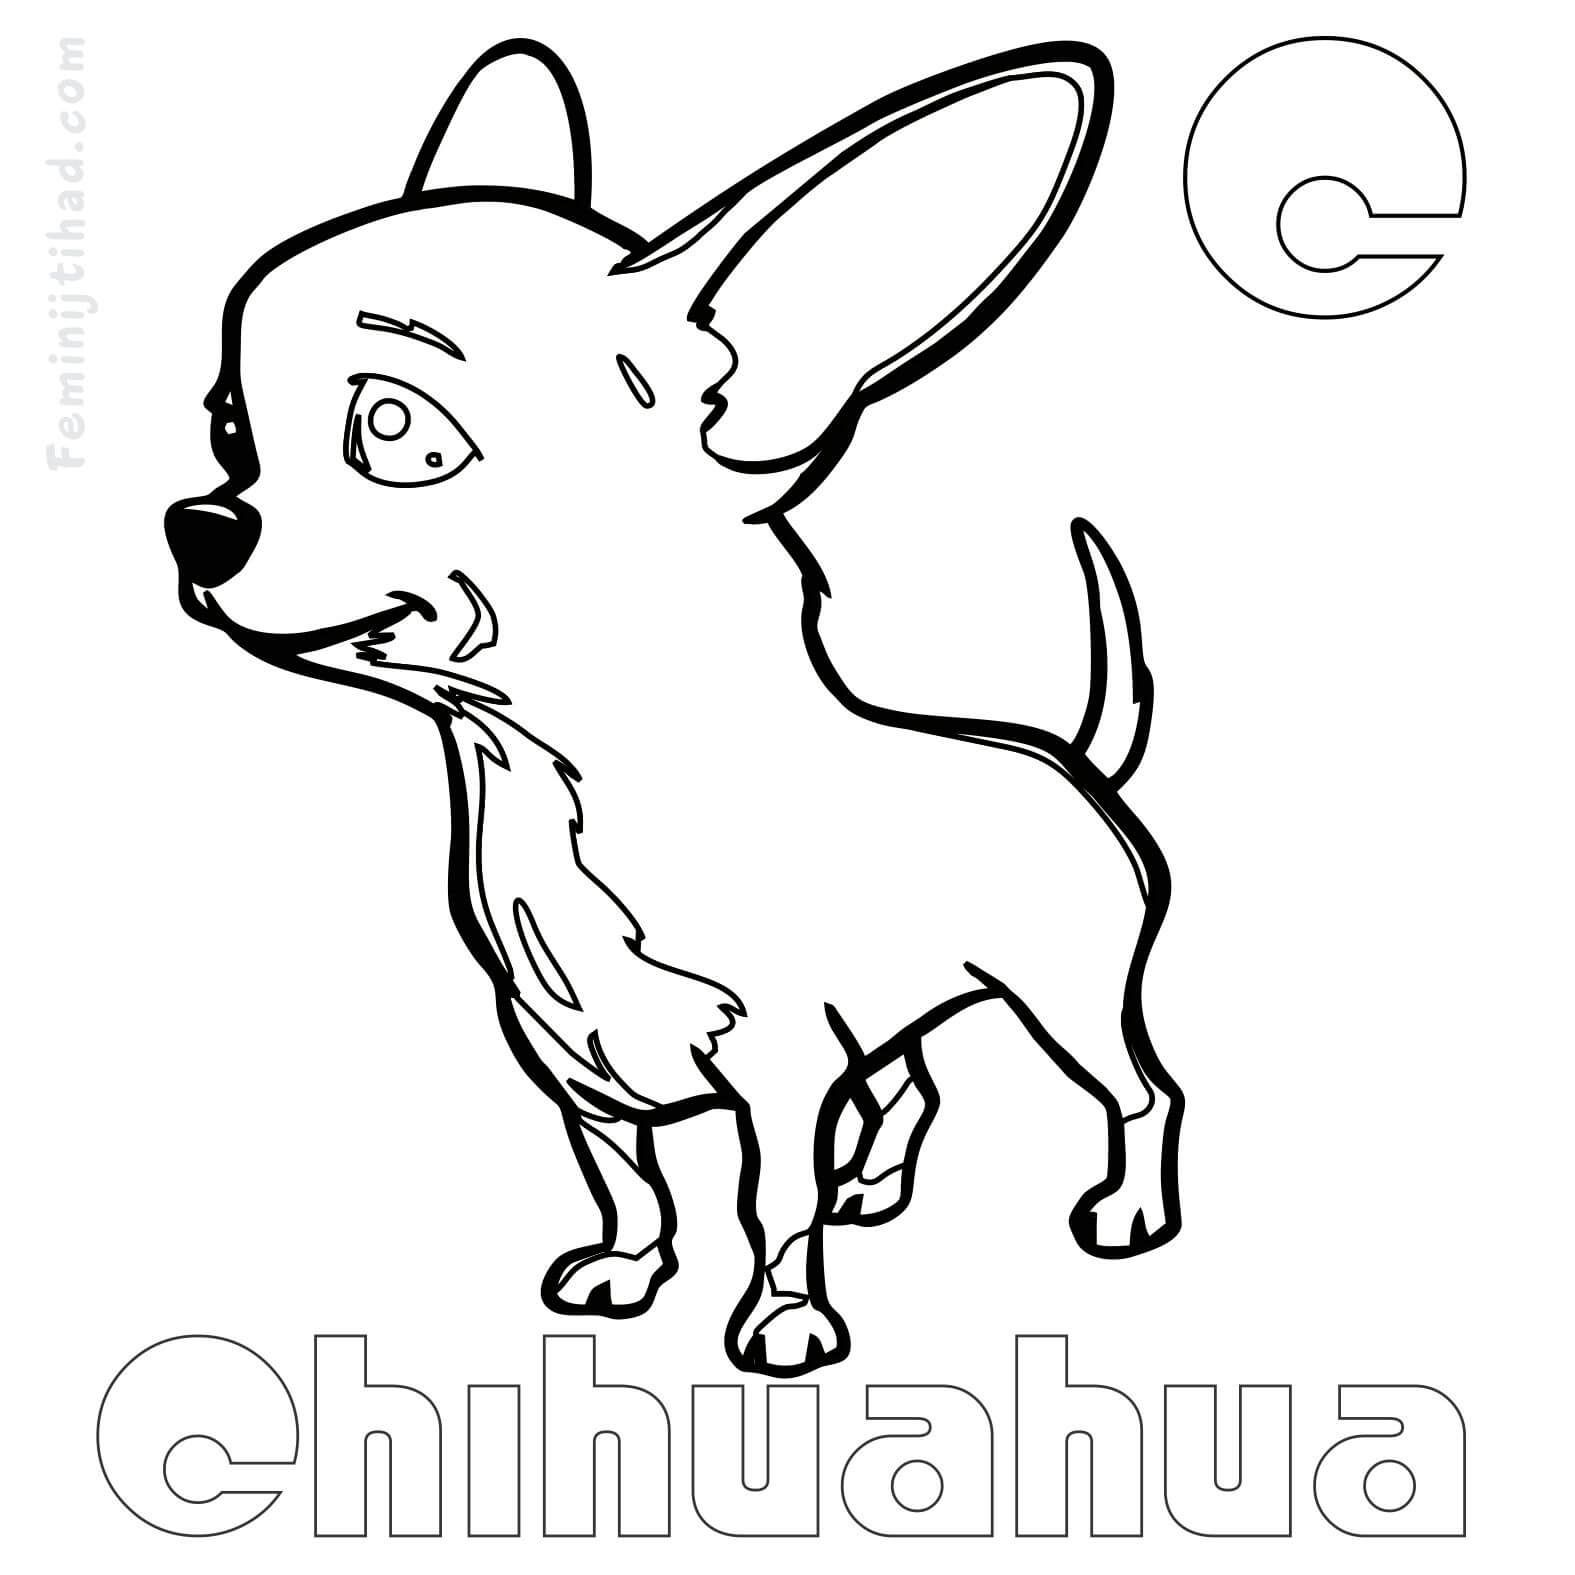 small dog coloring pages two little dog coloring page dog pinterest dog free small dog pages coloring